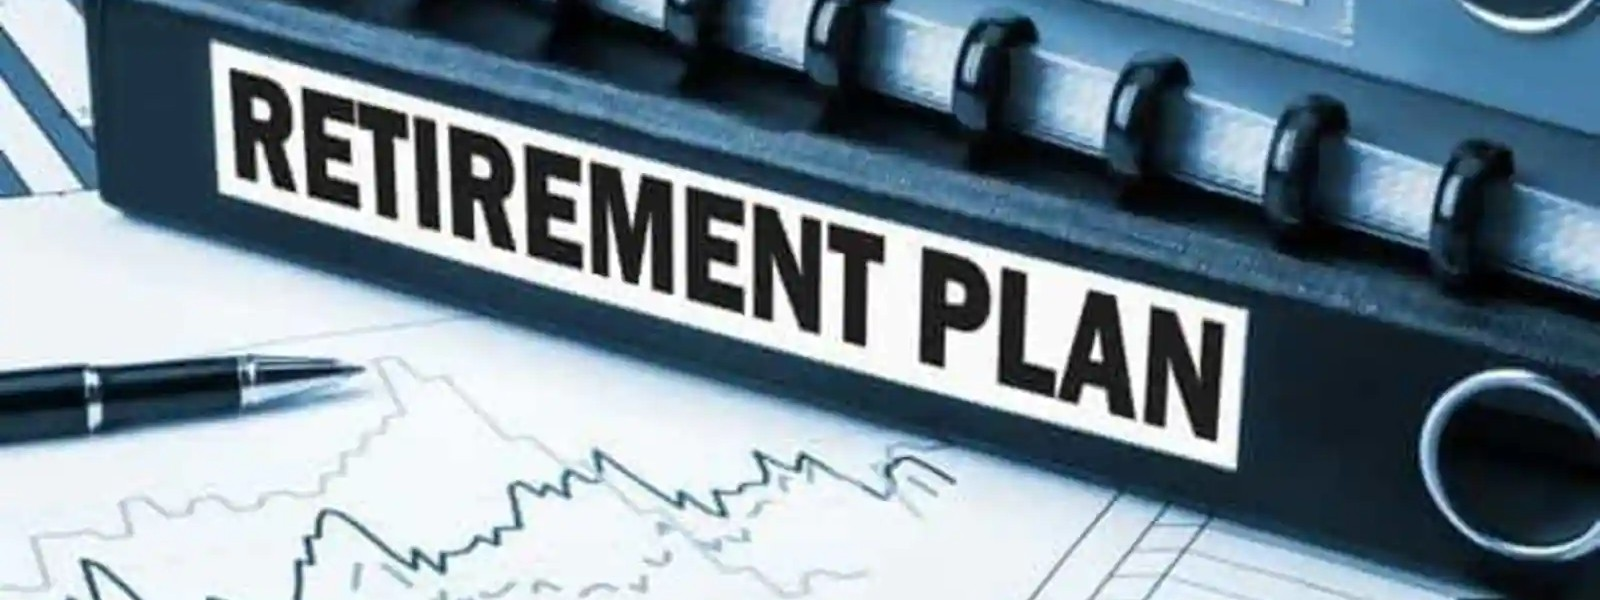 Cabinet green light to extend retirement age for private sector